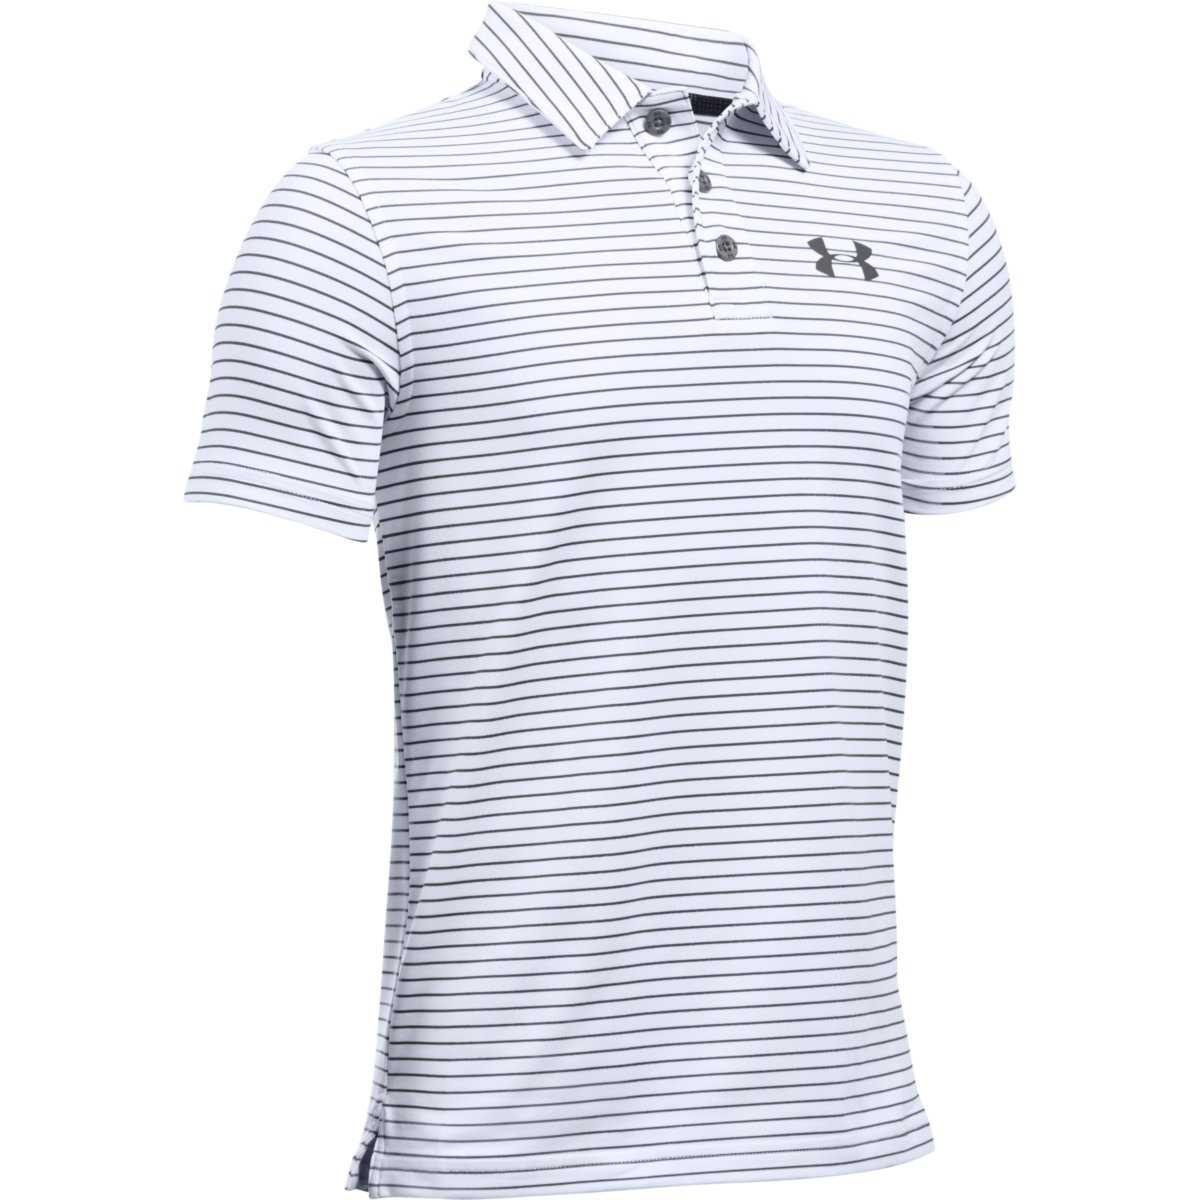 7589d378 Under Armour Golf Boys' Playoff Stripe Polo - White/Graphite